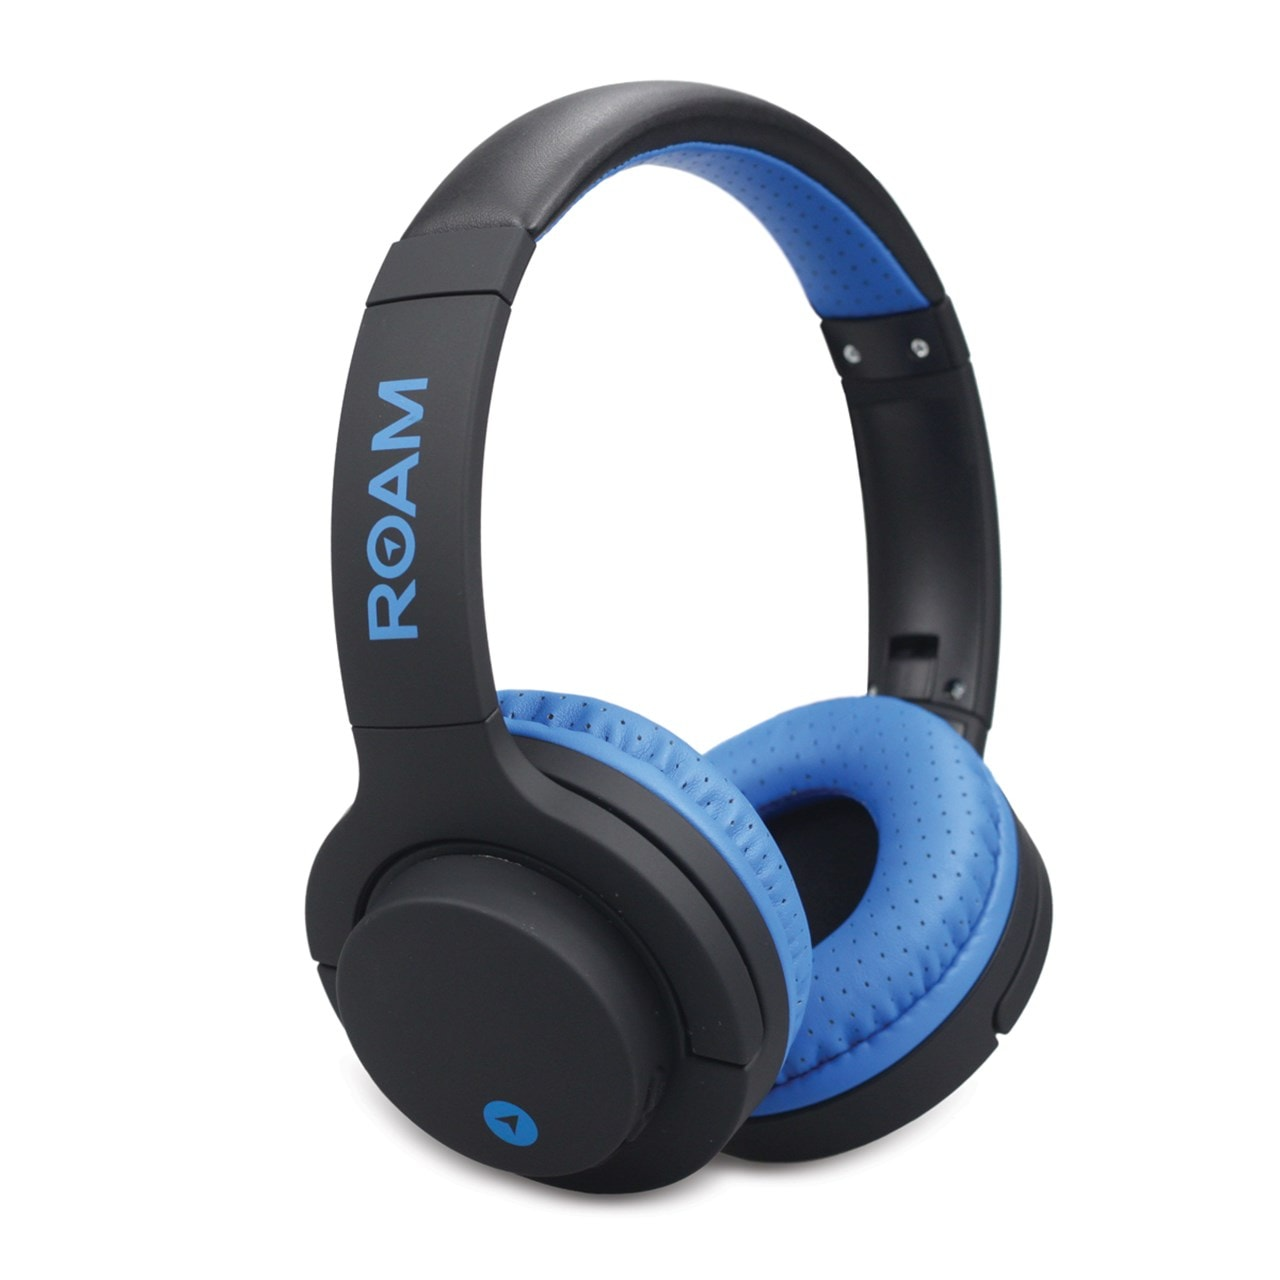 Roam Sports Pro Blue Bluetooth Headphones - 1